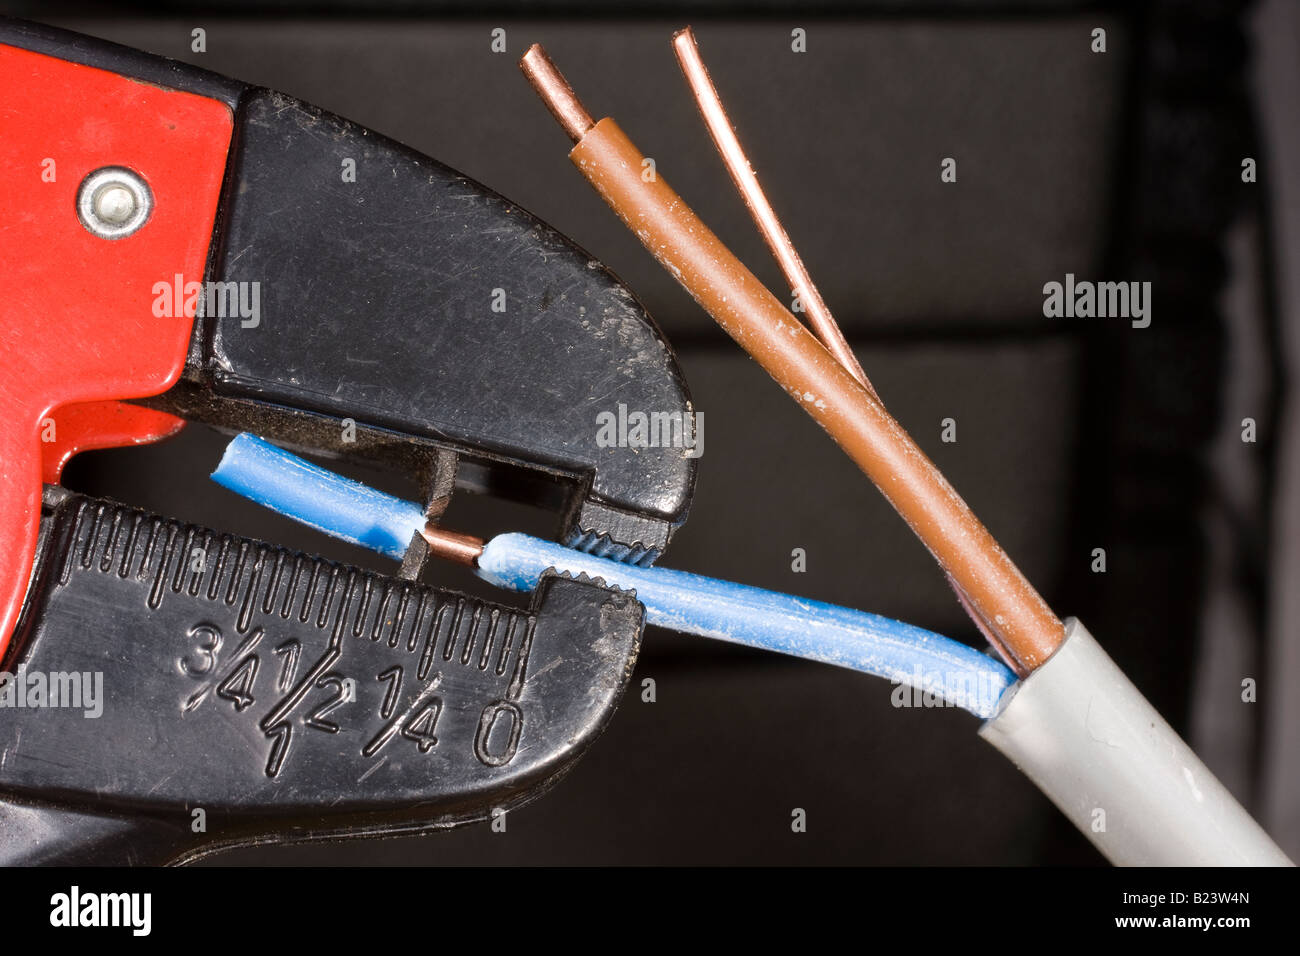 Wire Grip Stock Photos & Wire Grip Stock Images - Alamy